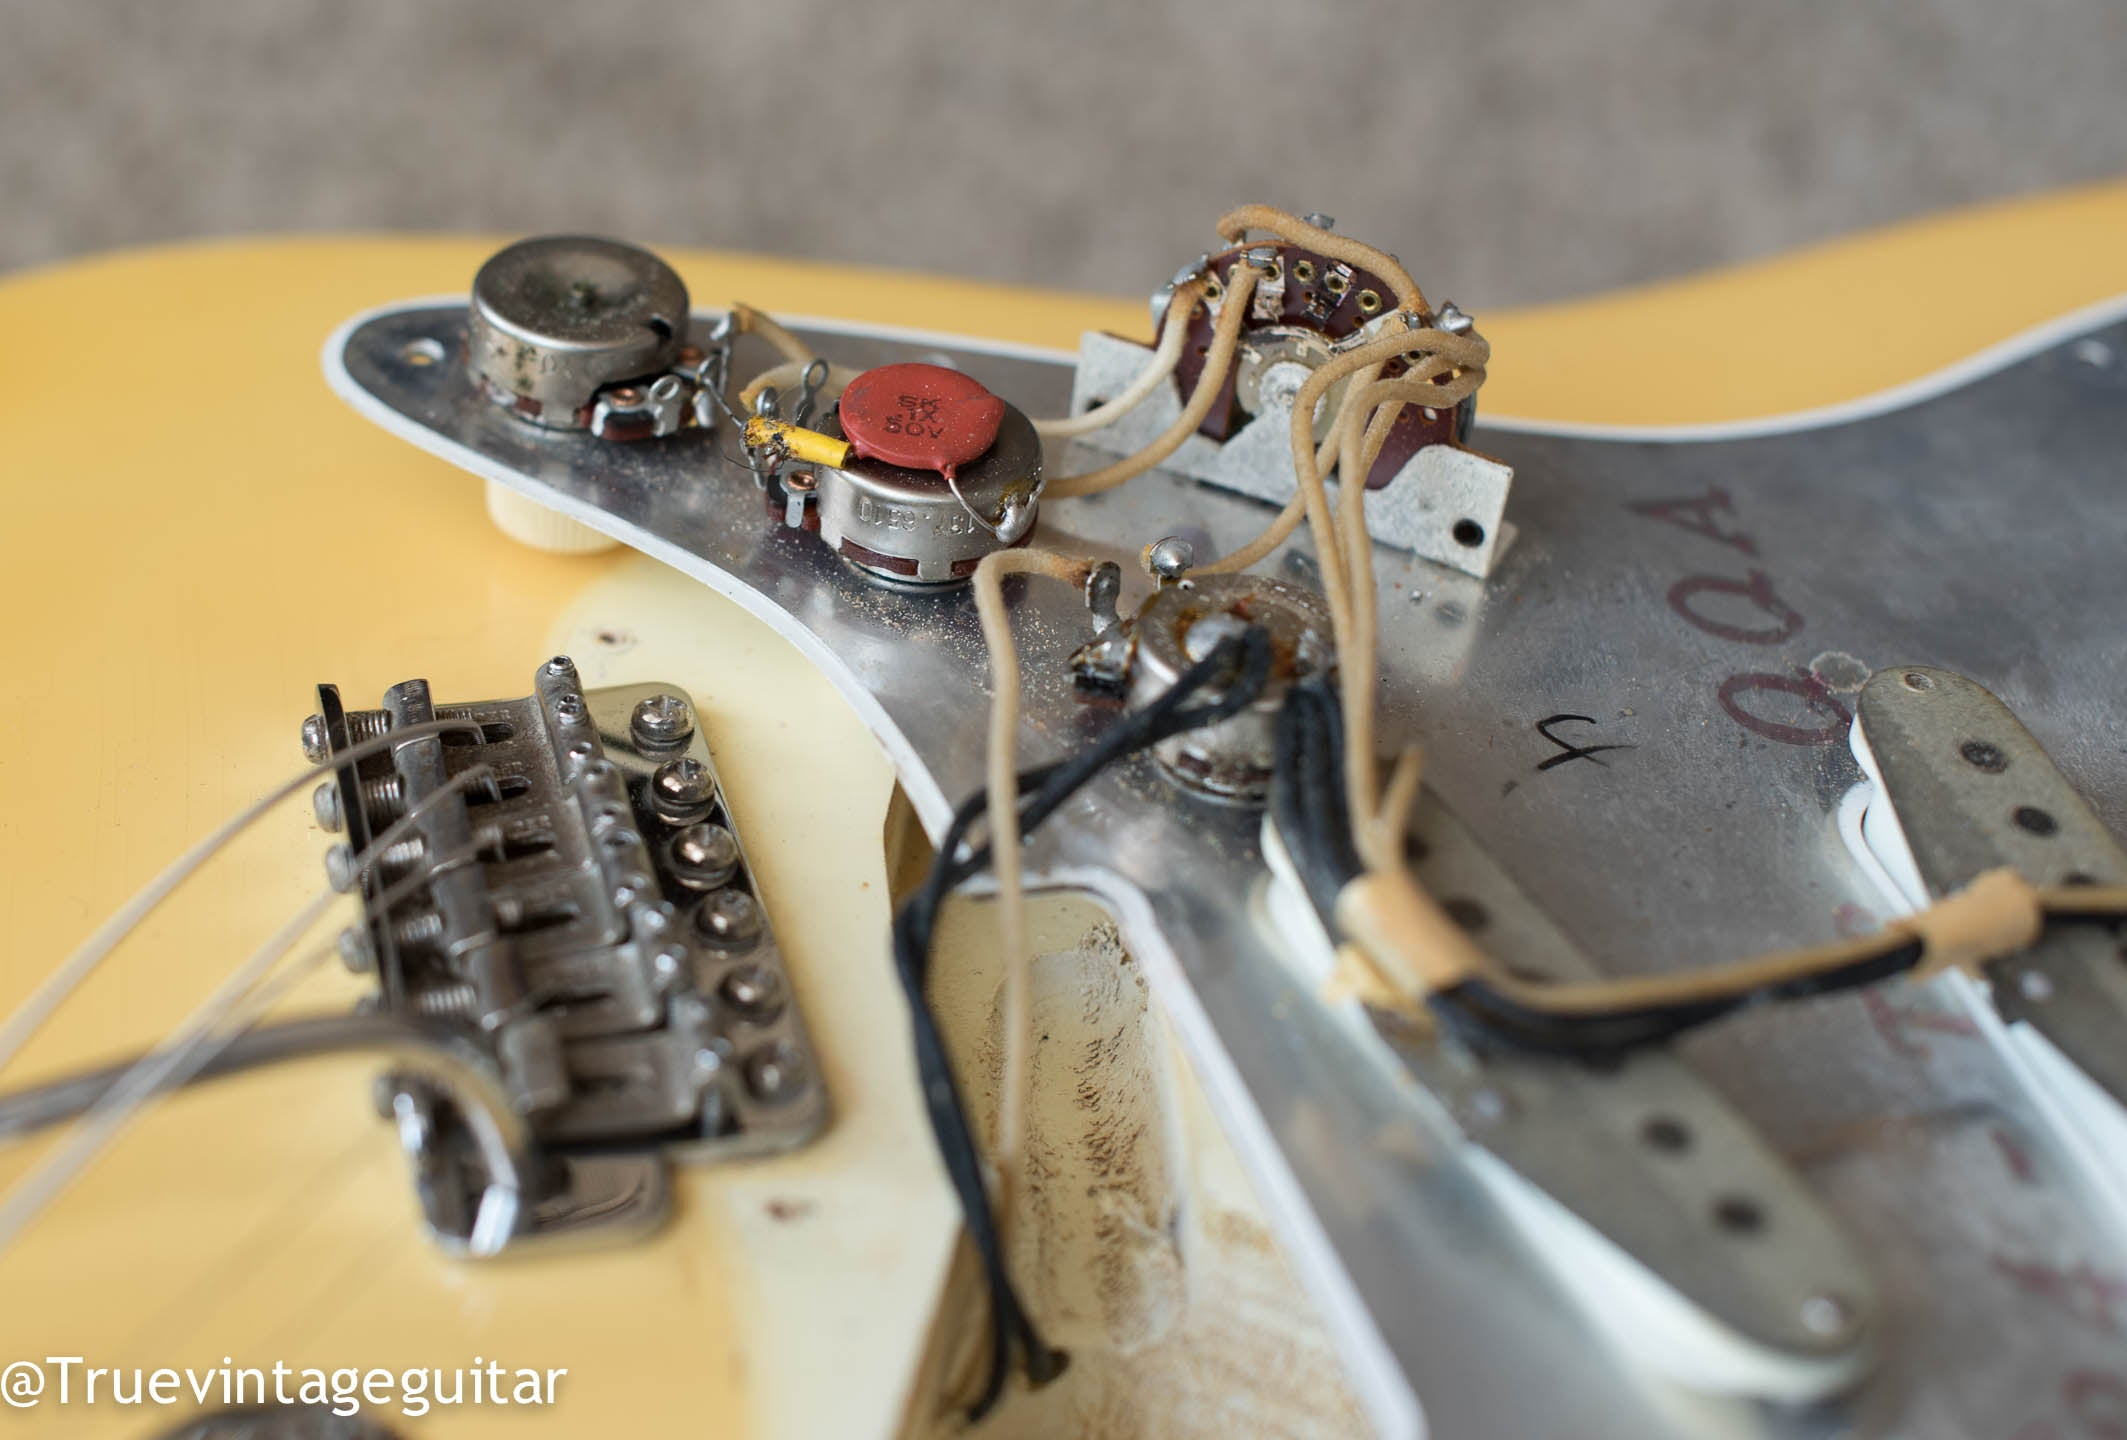 How old is my Fender Stratocaster?